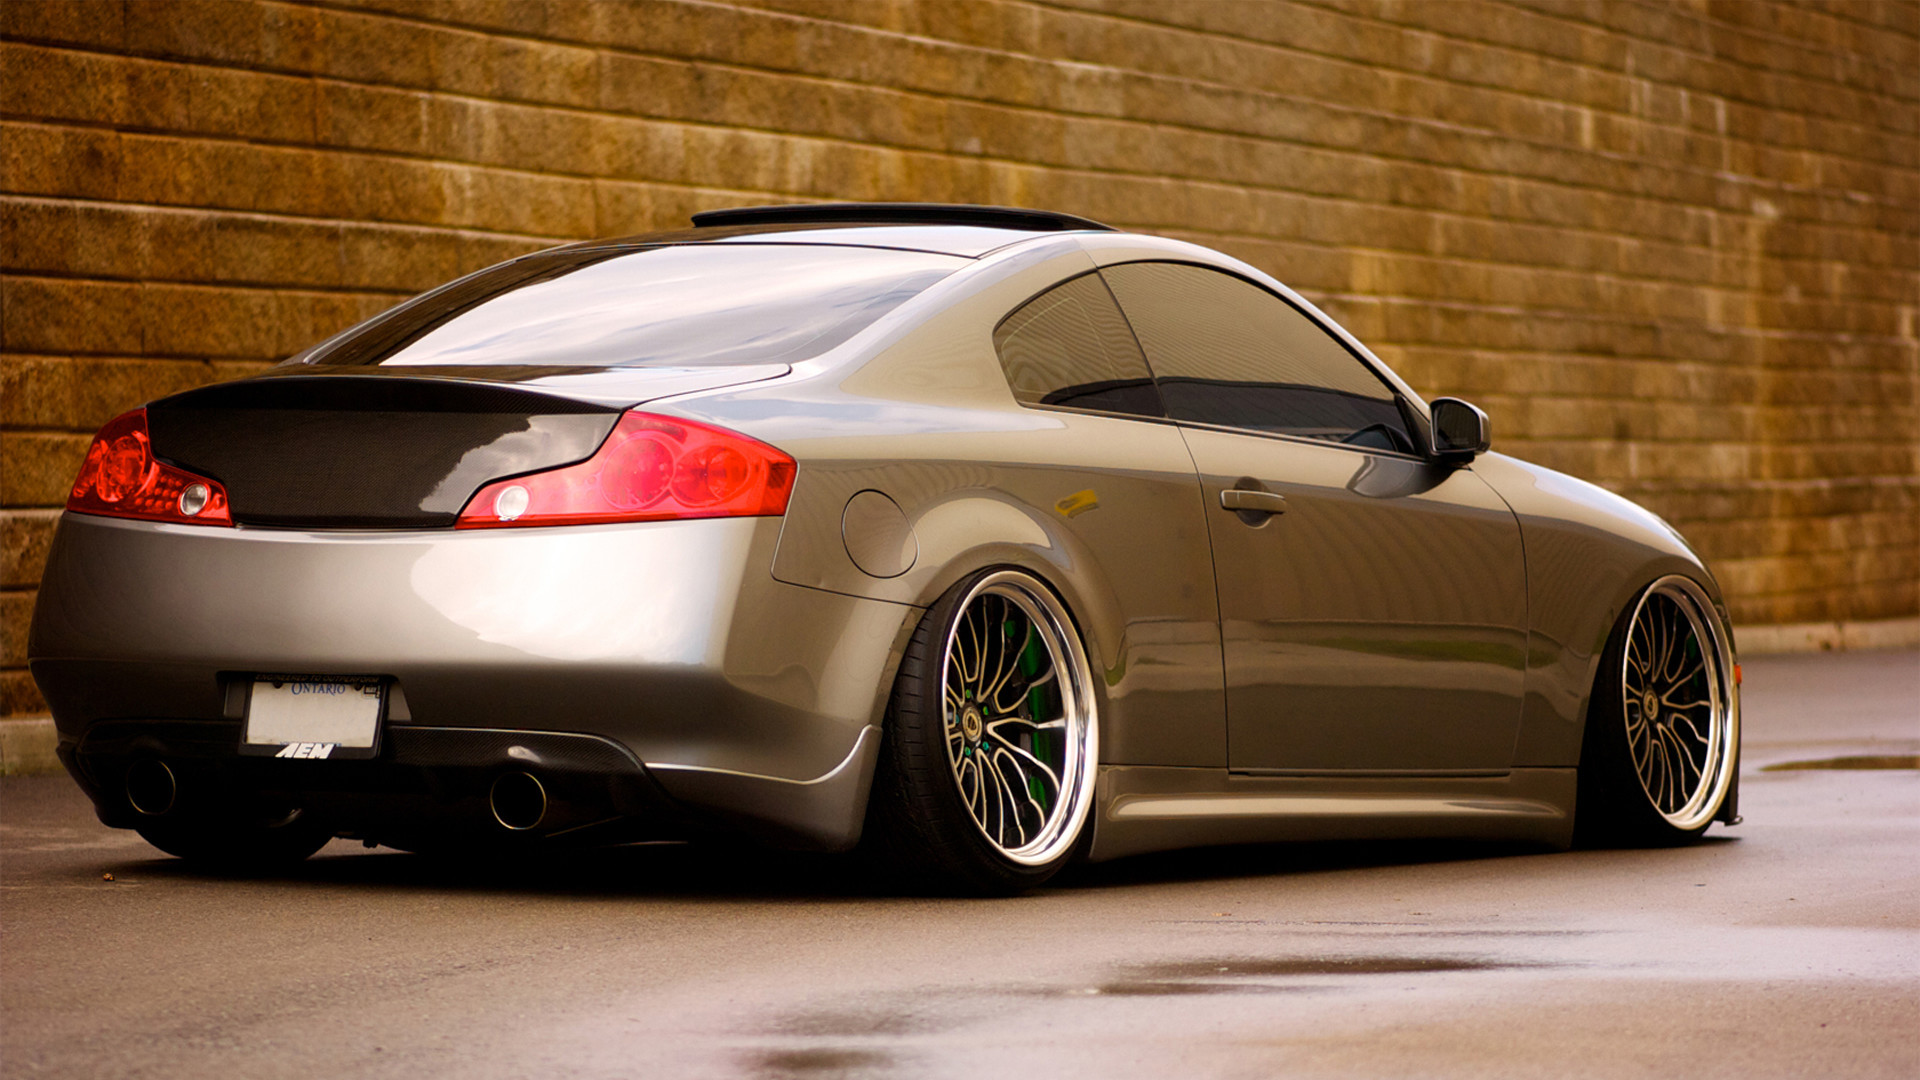 1920x1080 Cool wallpaper of infiniti g35, picture of coupe, low .